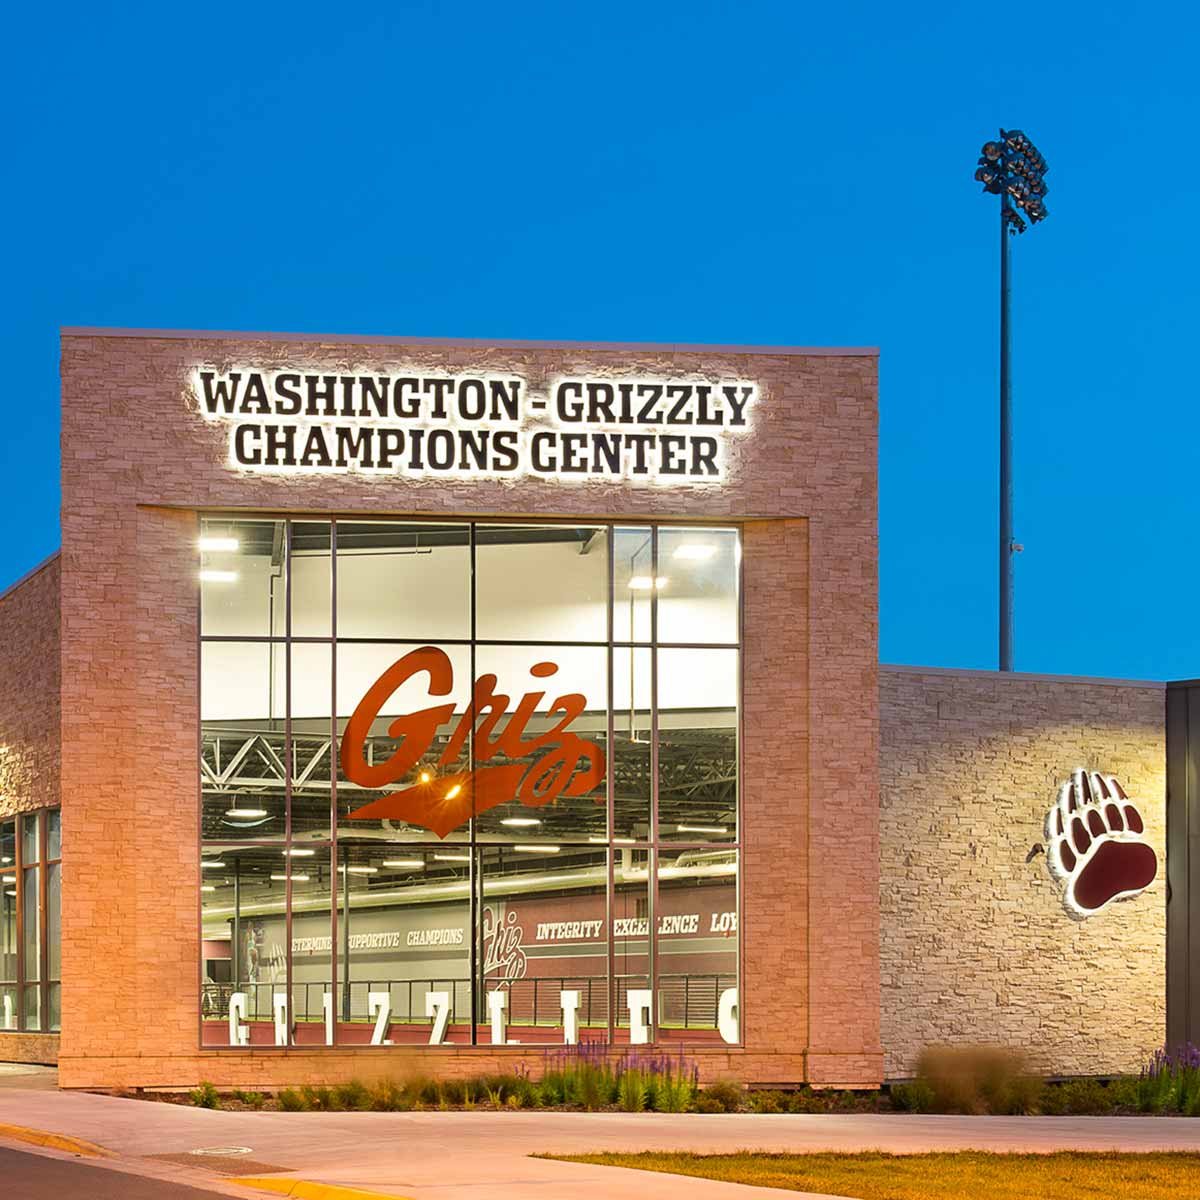 University of Montana Washington-Grizzly Champions Center